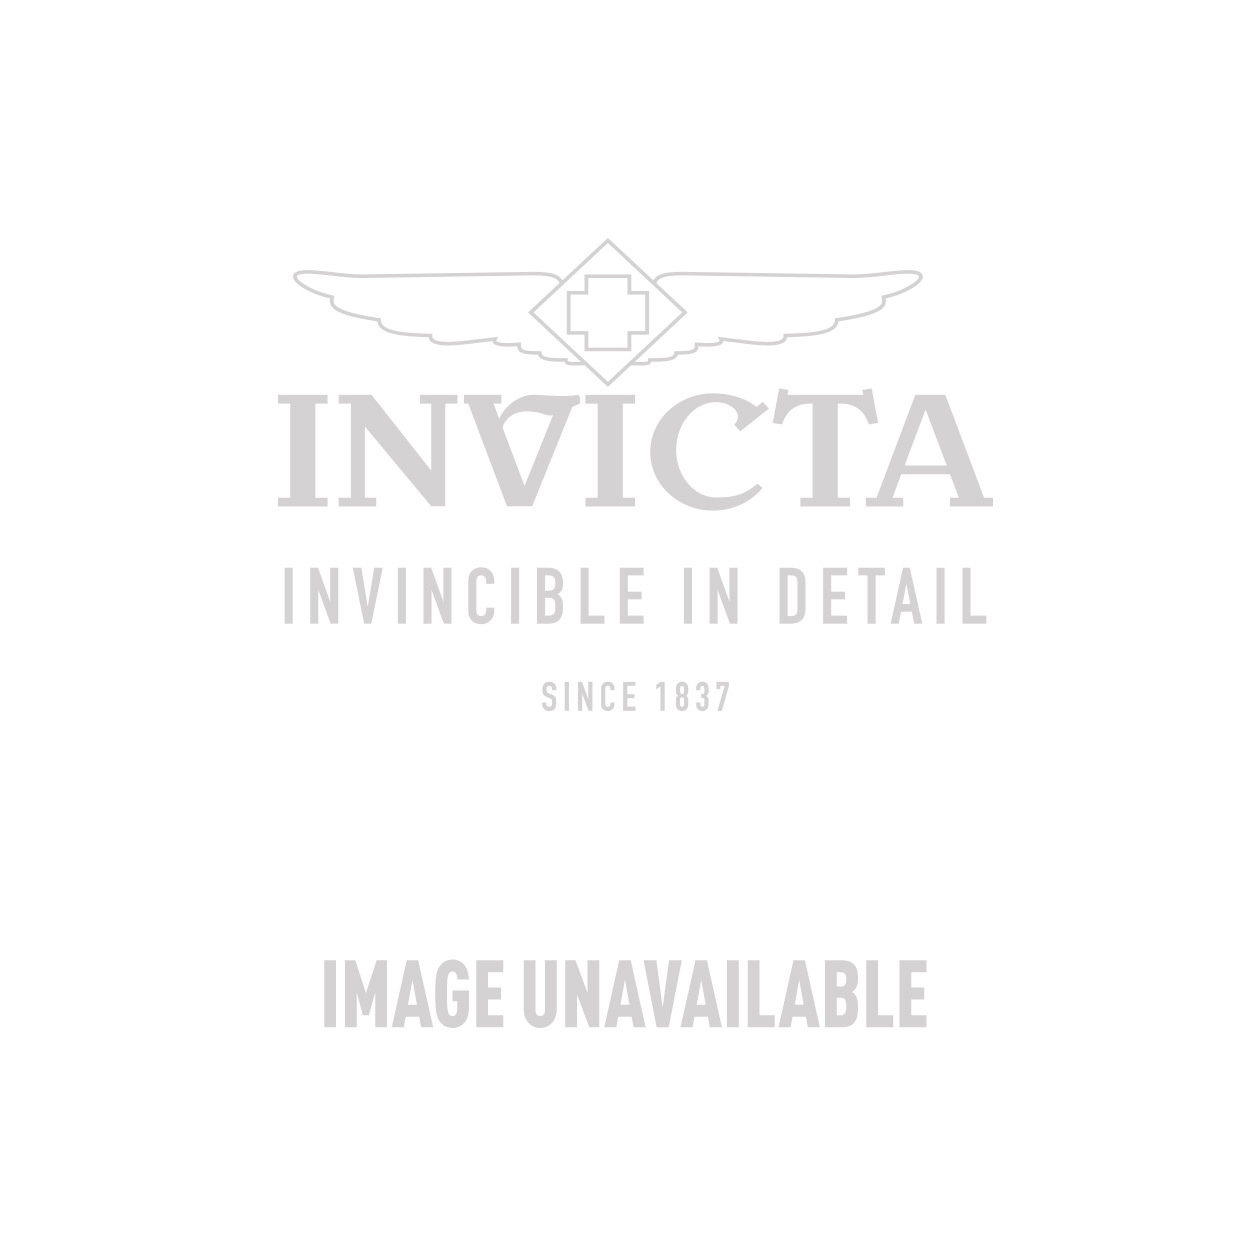 Invicta 50 Slot Impact Case - Model DC50YEL